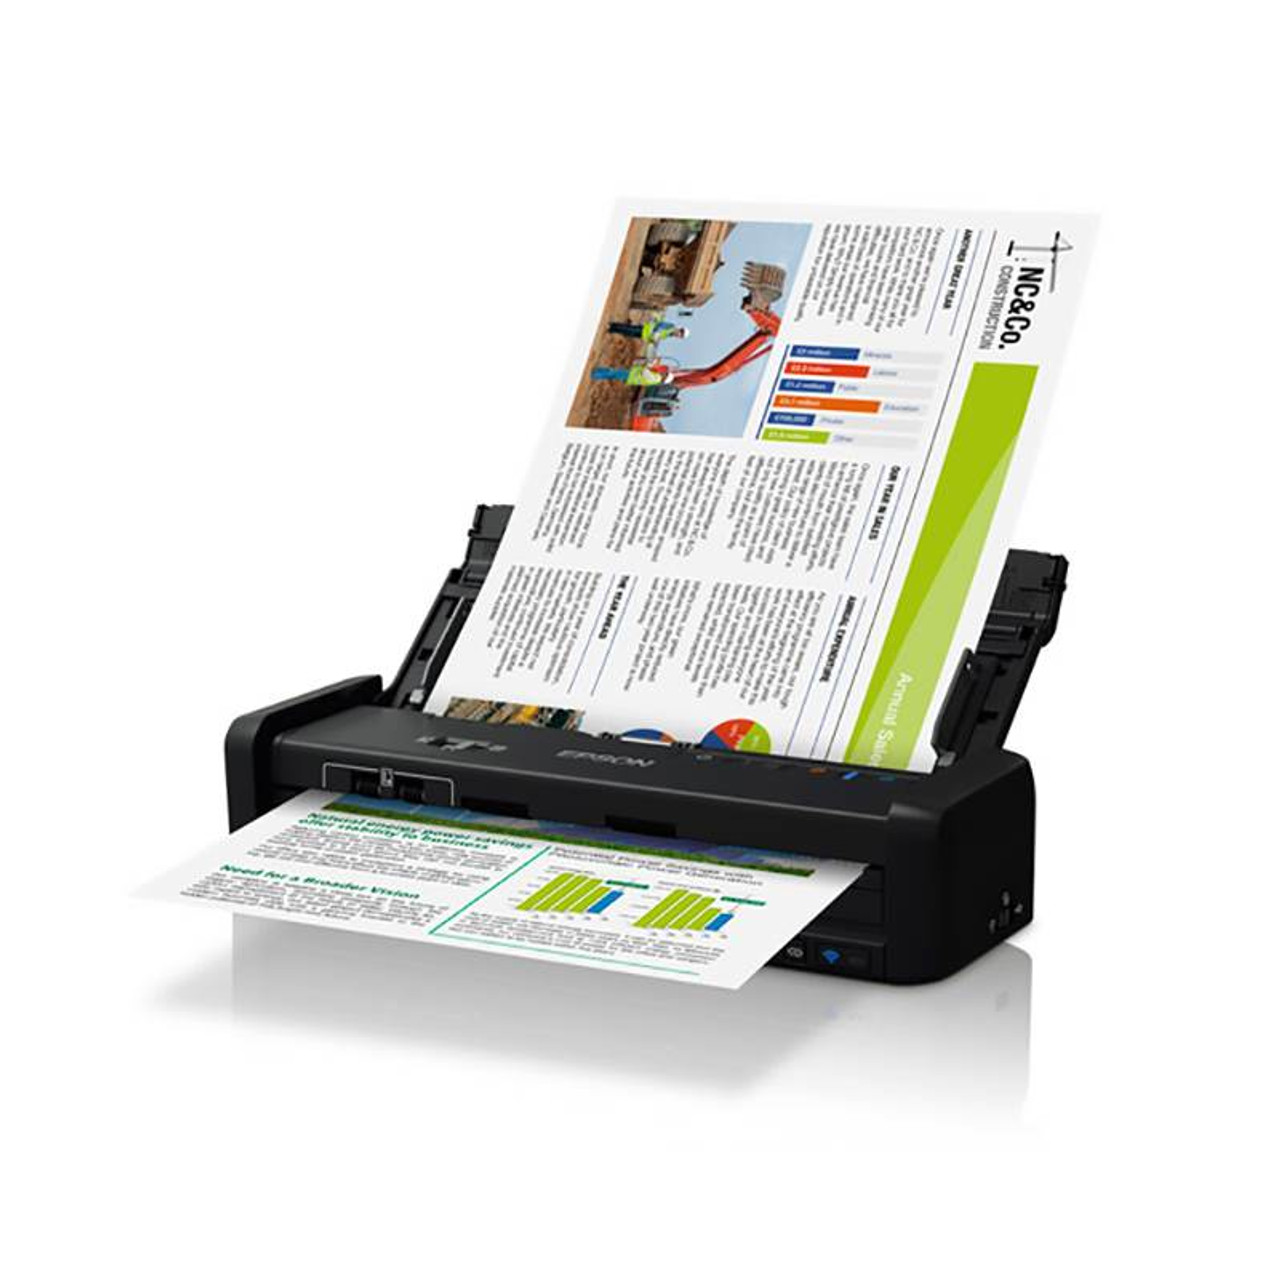 Image for Epson WorkForce DS-360W Wireless Sheet Feed Colour Document Scanner CX Computer Superstore